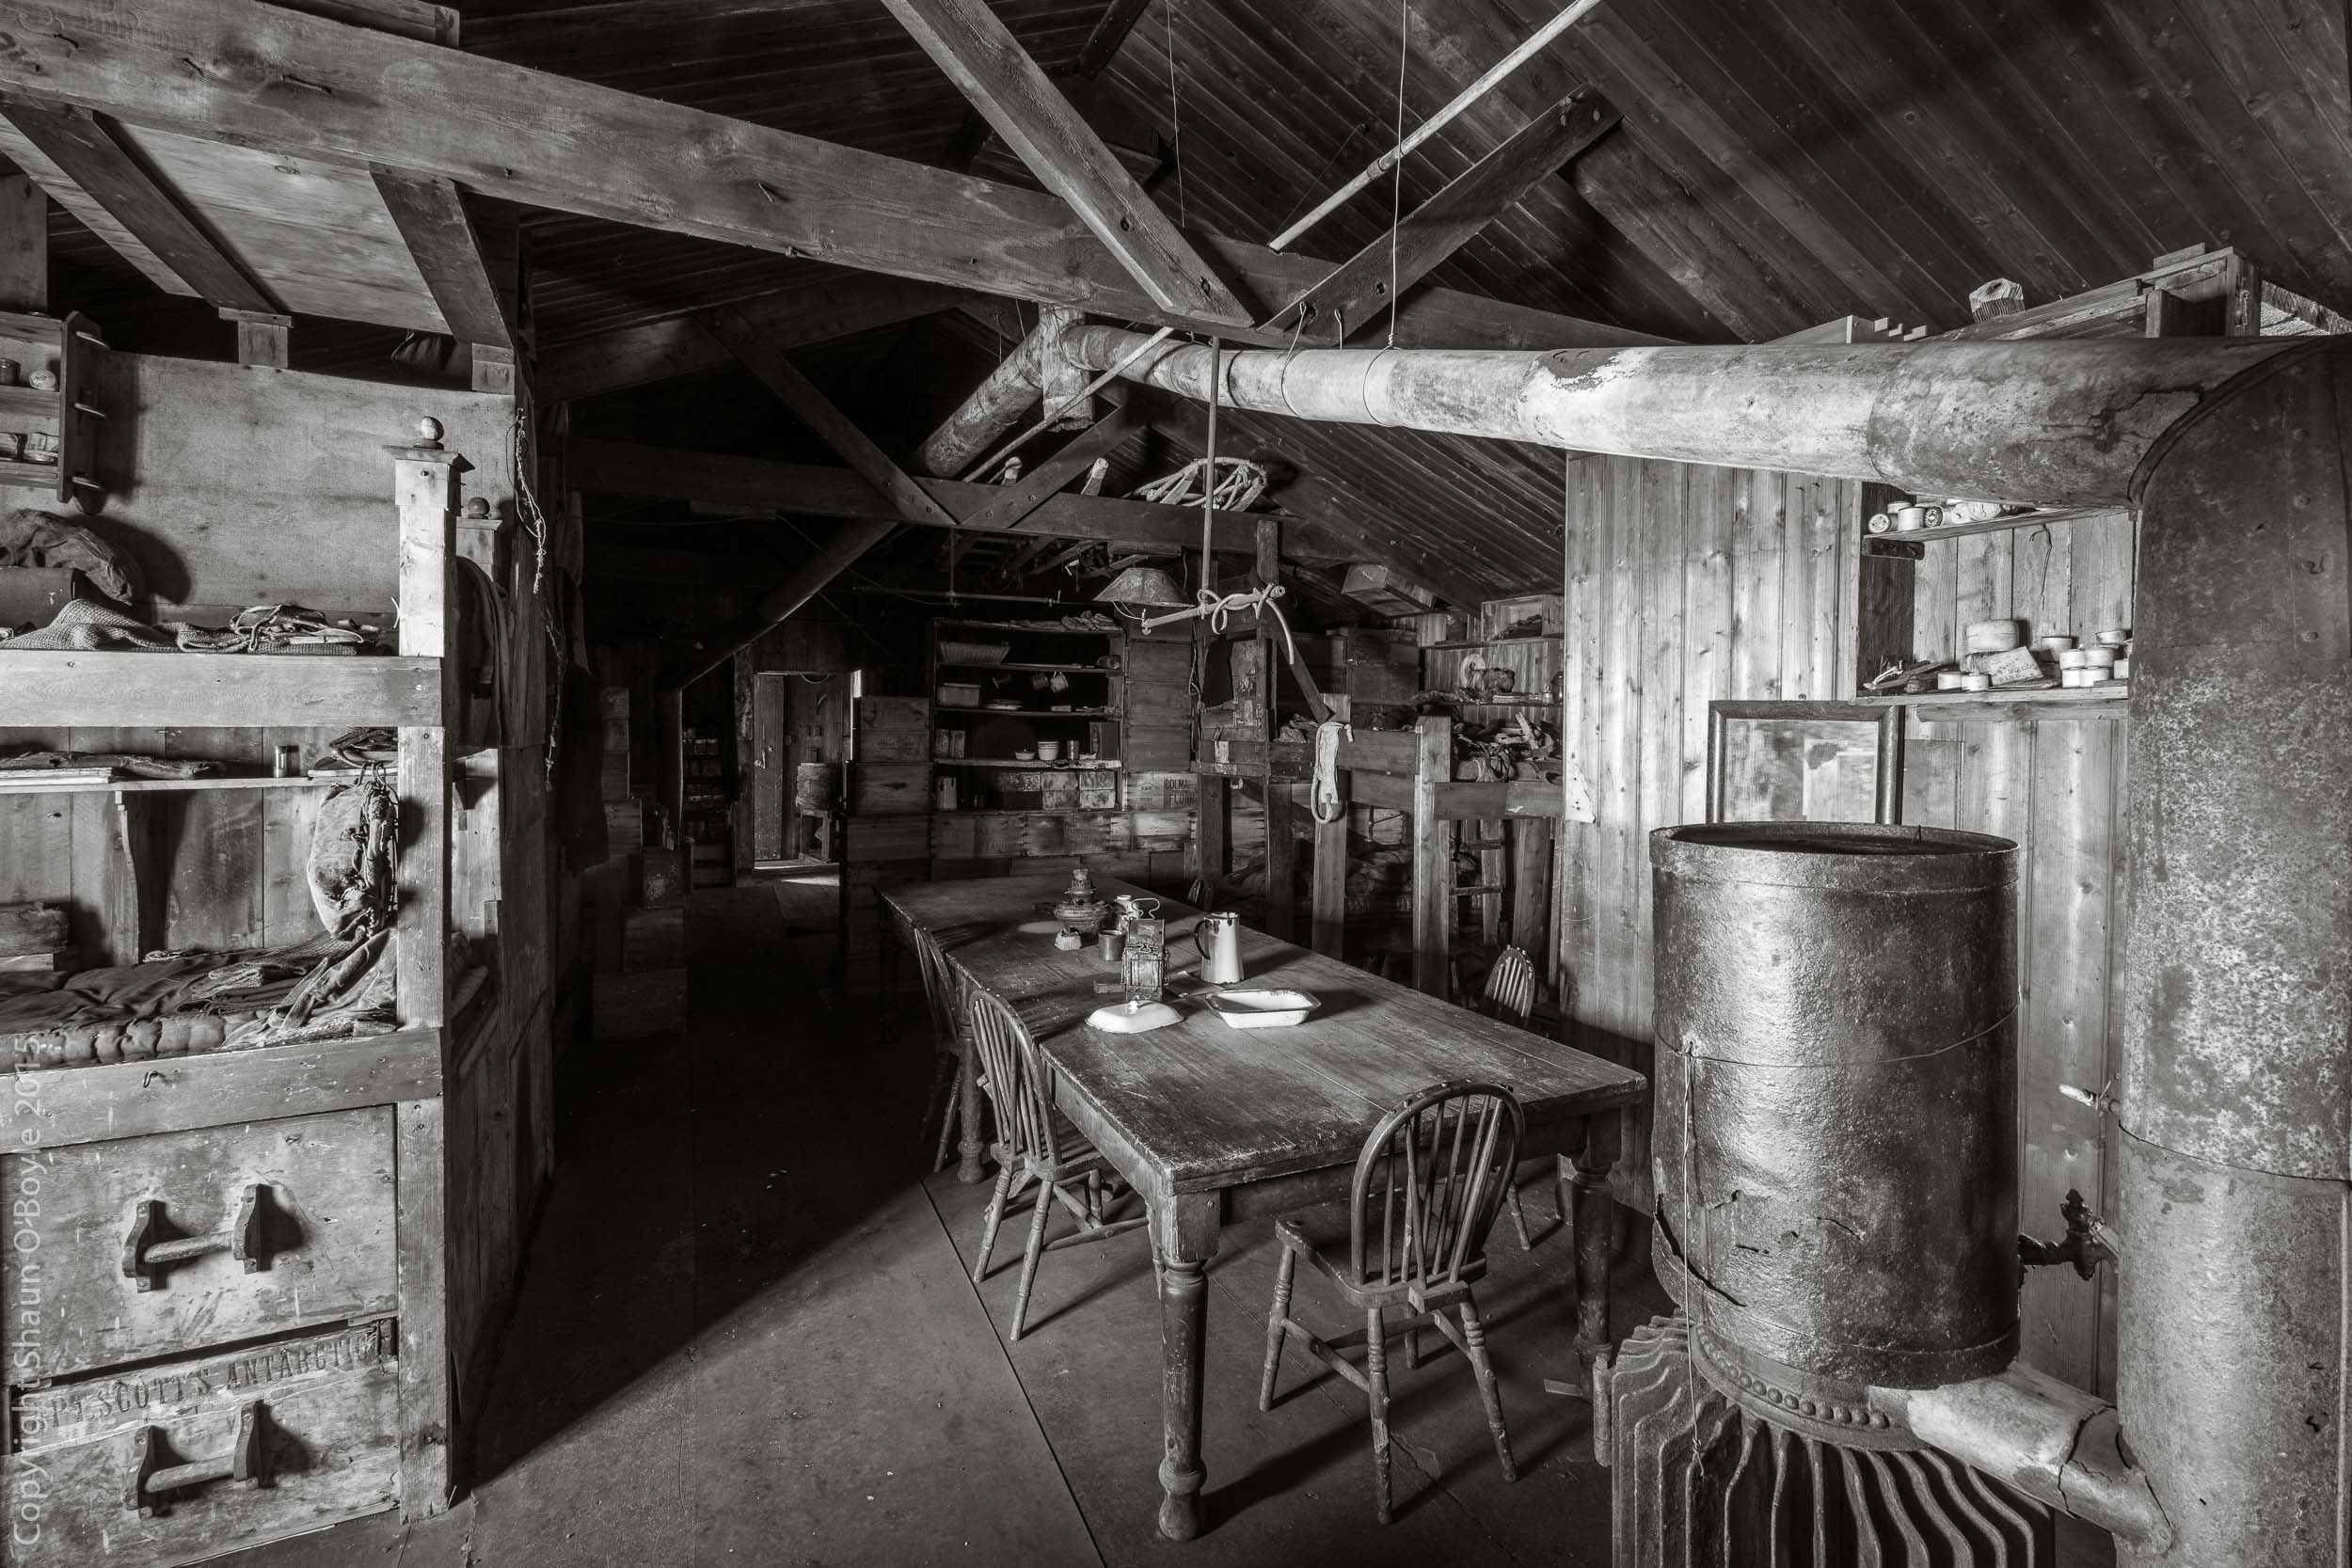 Wardroom Table, Cape Evans Hut. The chair in the foreground is Captain Scott's designated place.